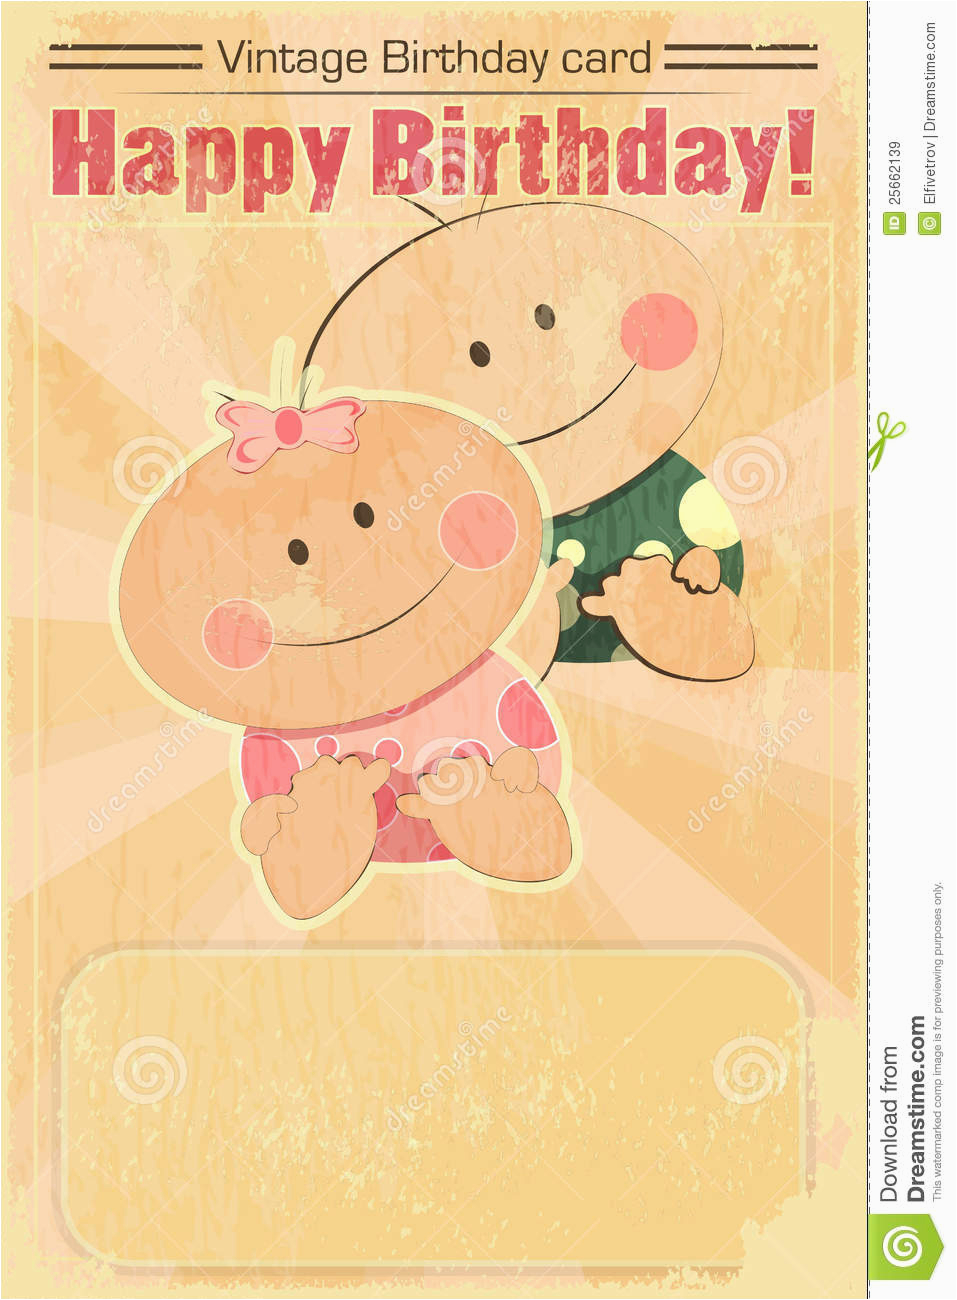 royalty free stock images retro design baby birthday card image25662139